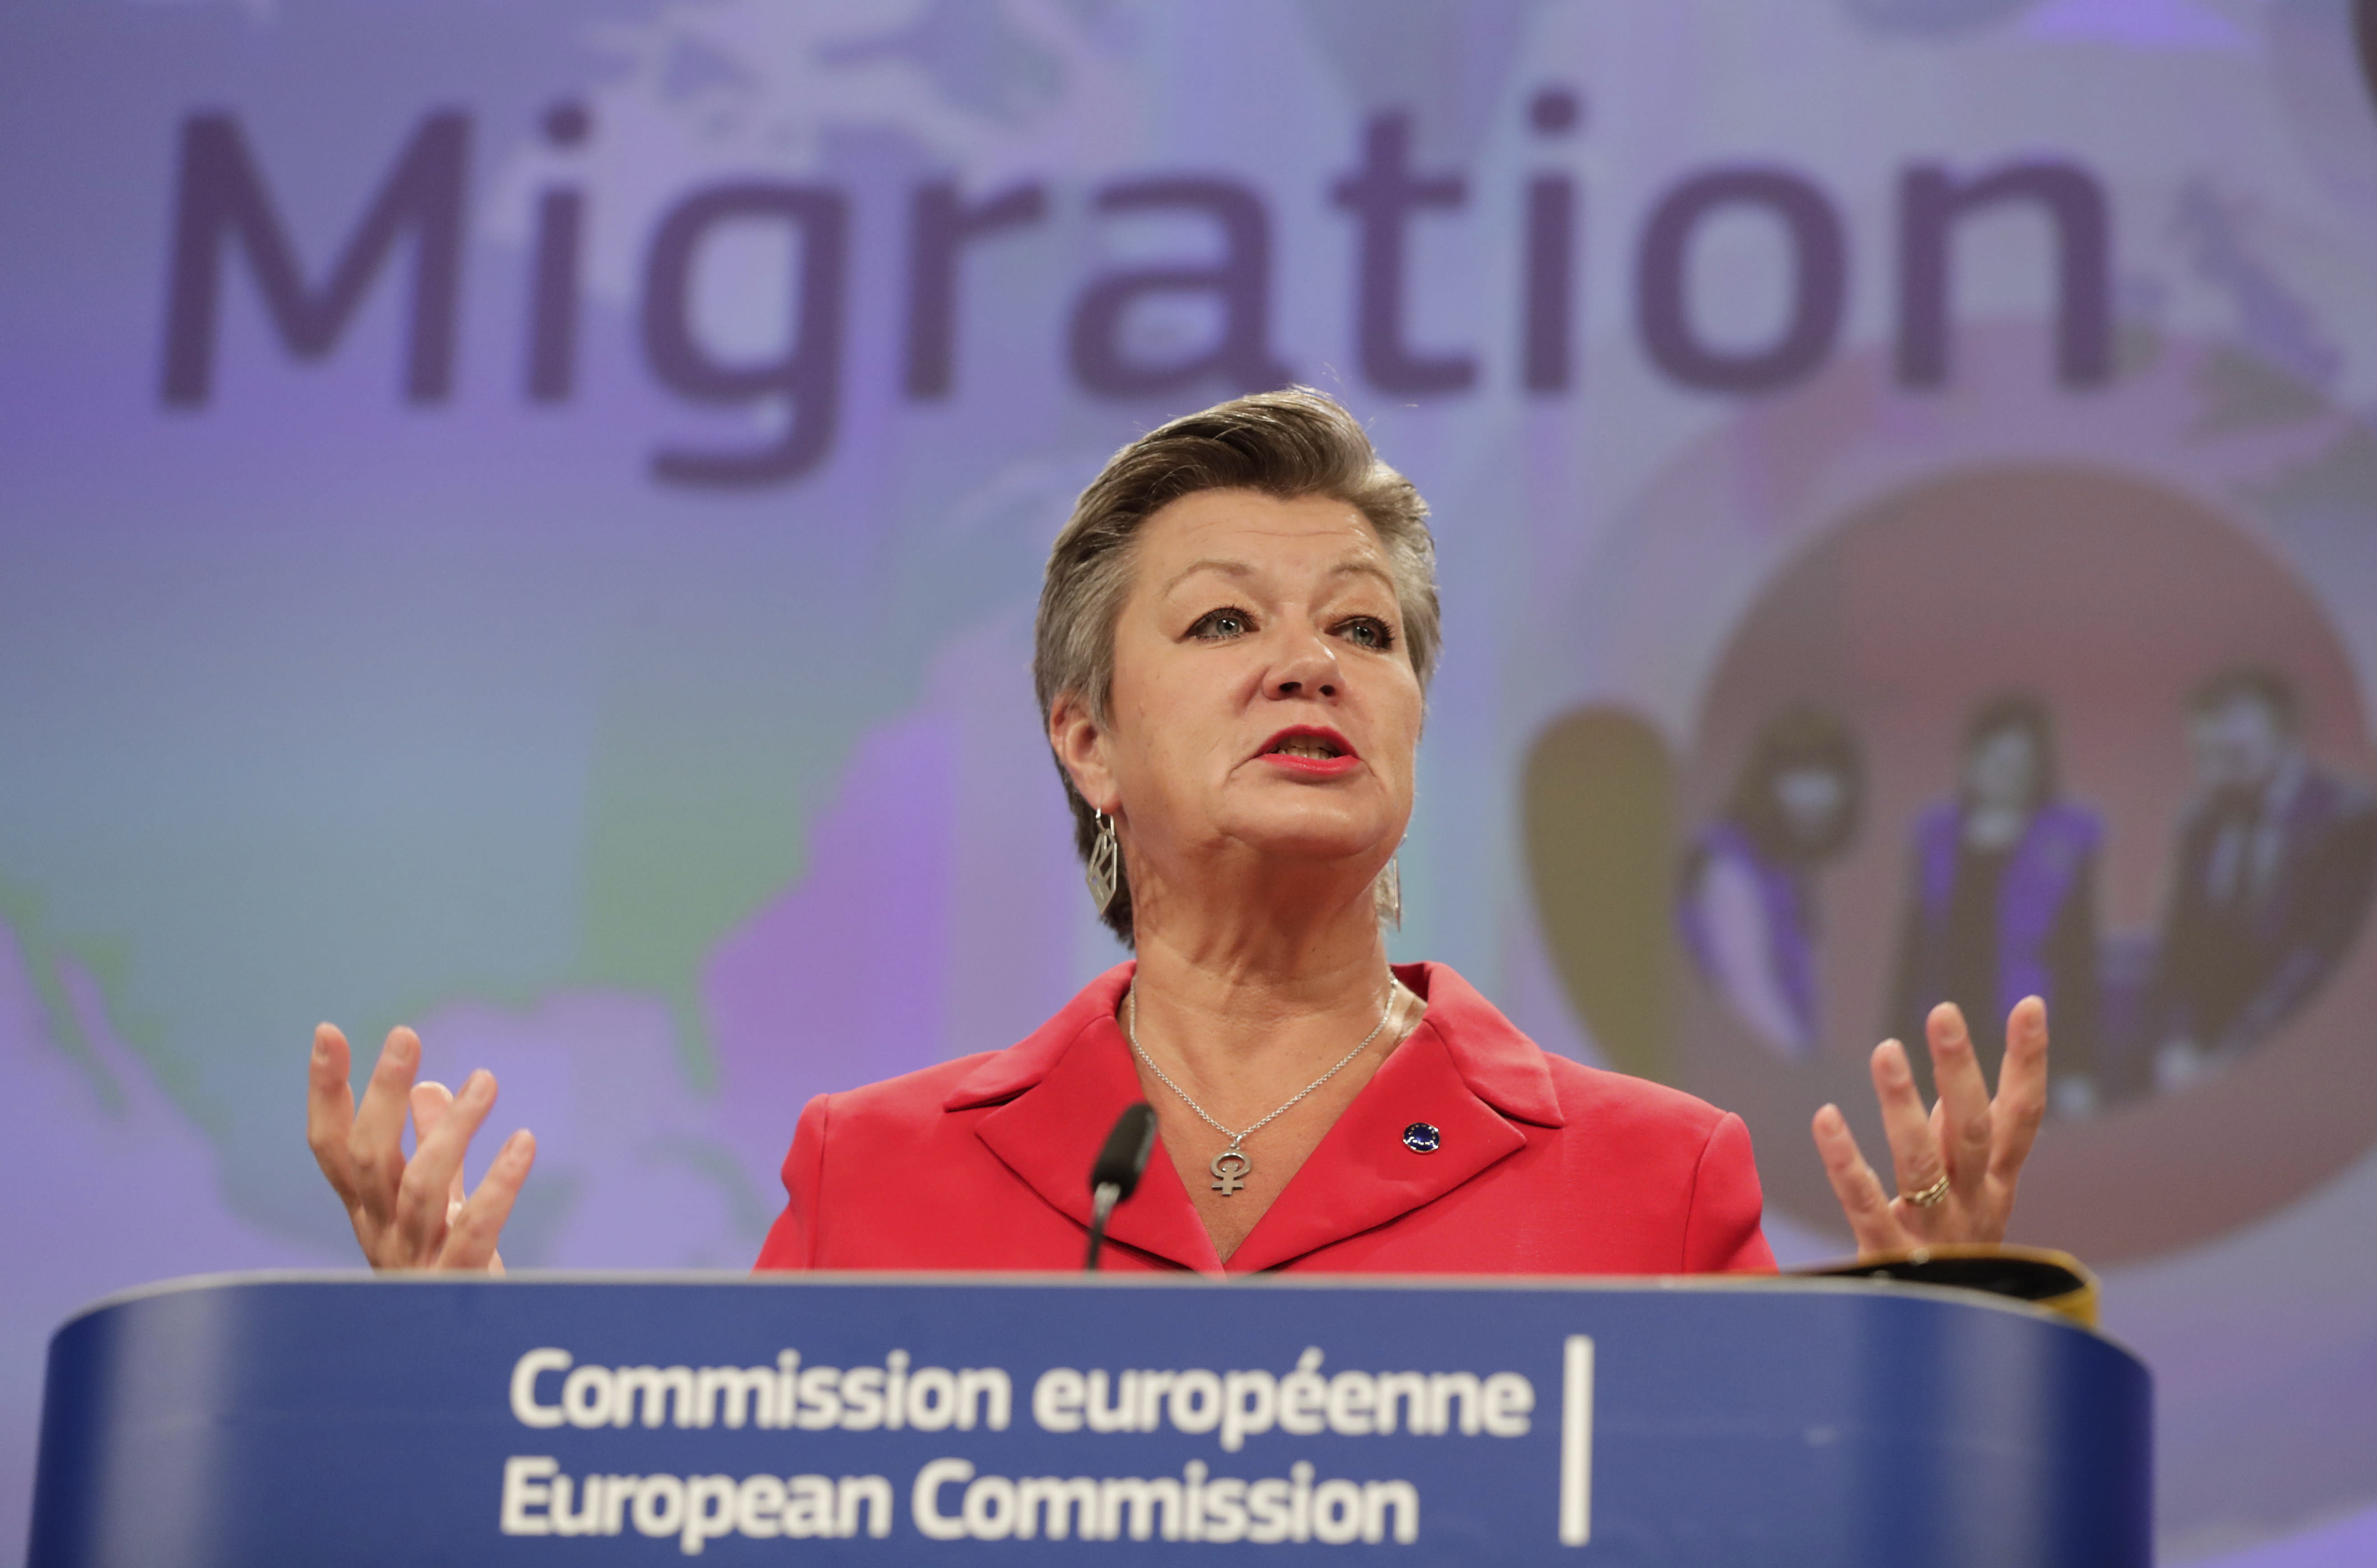 European Commissioner for Home Affairs Ylva Johansson, speaks during a media conference on the New Pact for Migration and Asylum at EU headquarters in Brussels, Wednesday, Sept. 23, 2020. (Stephanie Lecocq, Pool via AP)